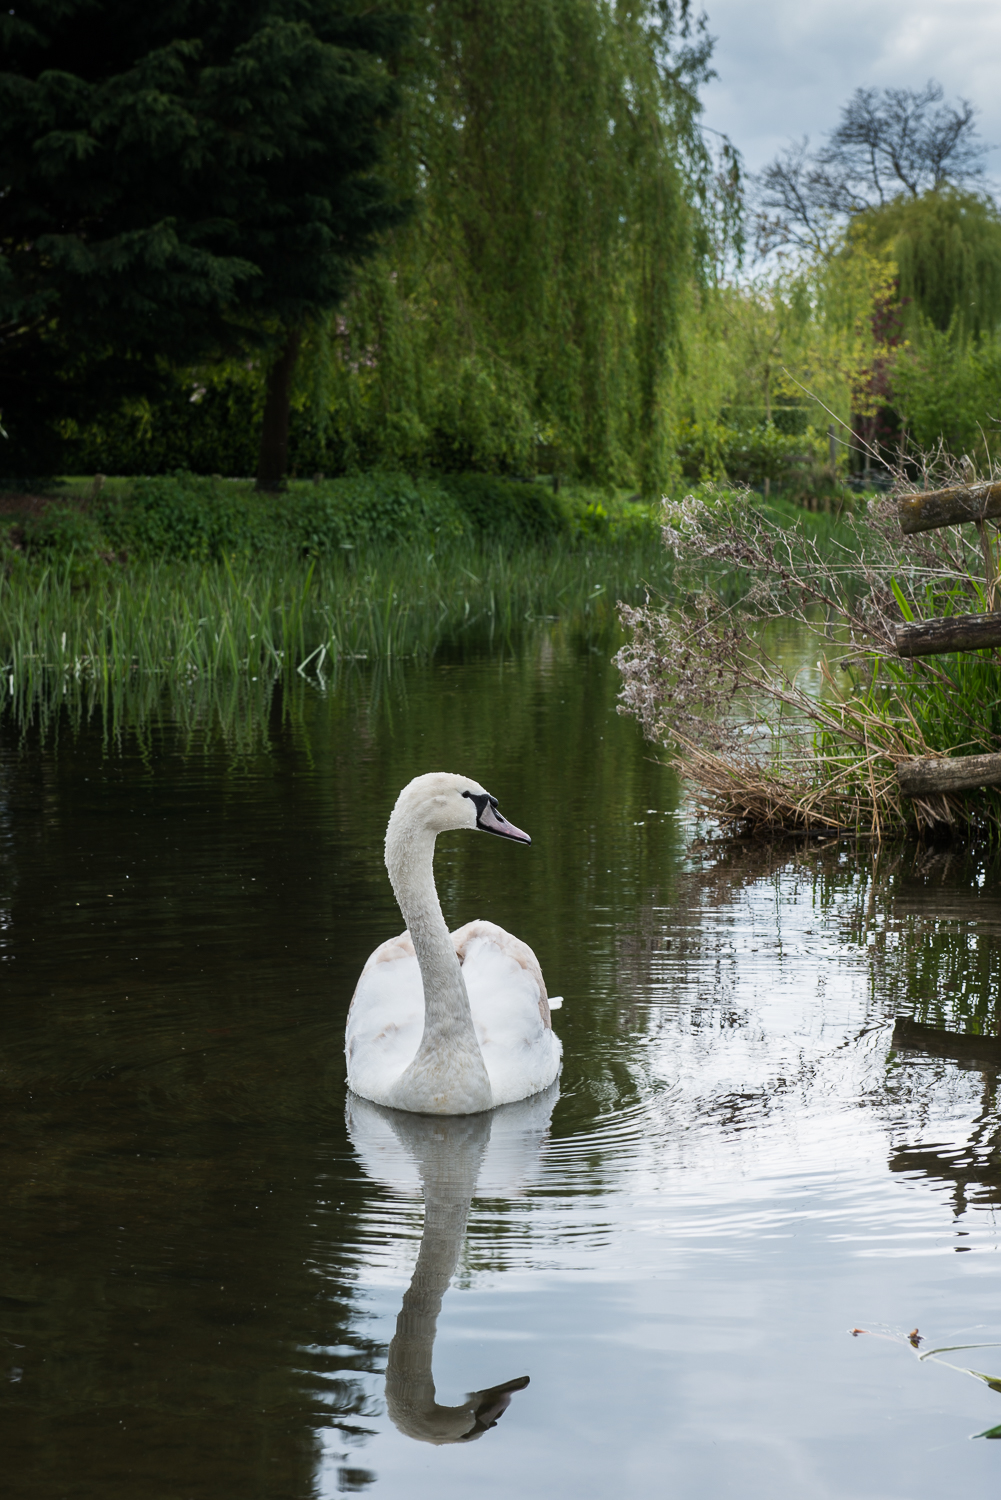 The Immature Swan